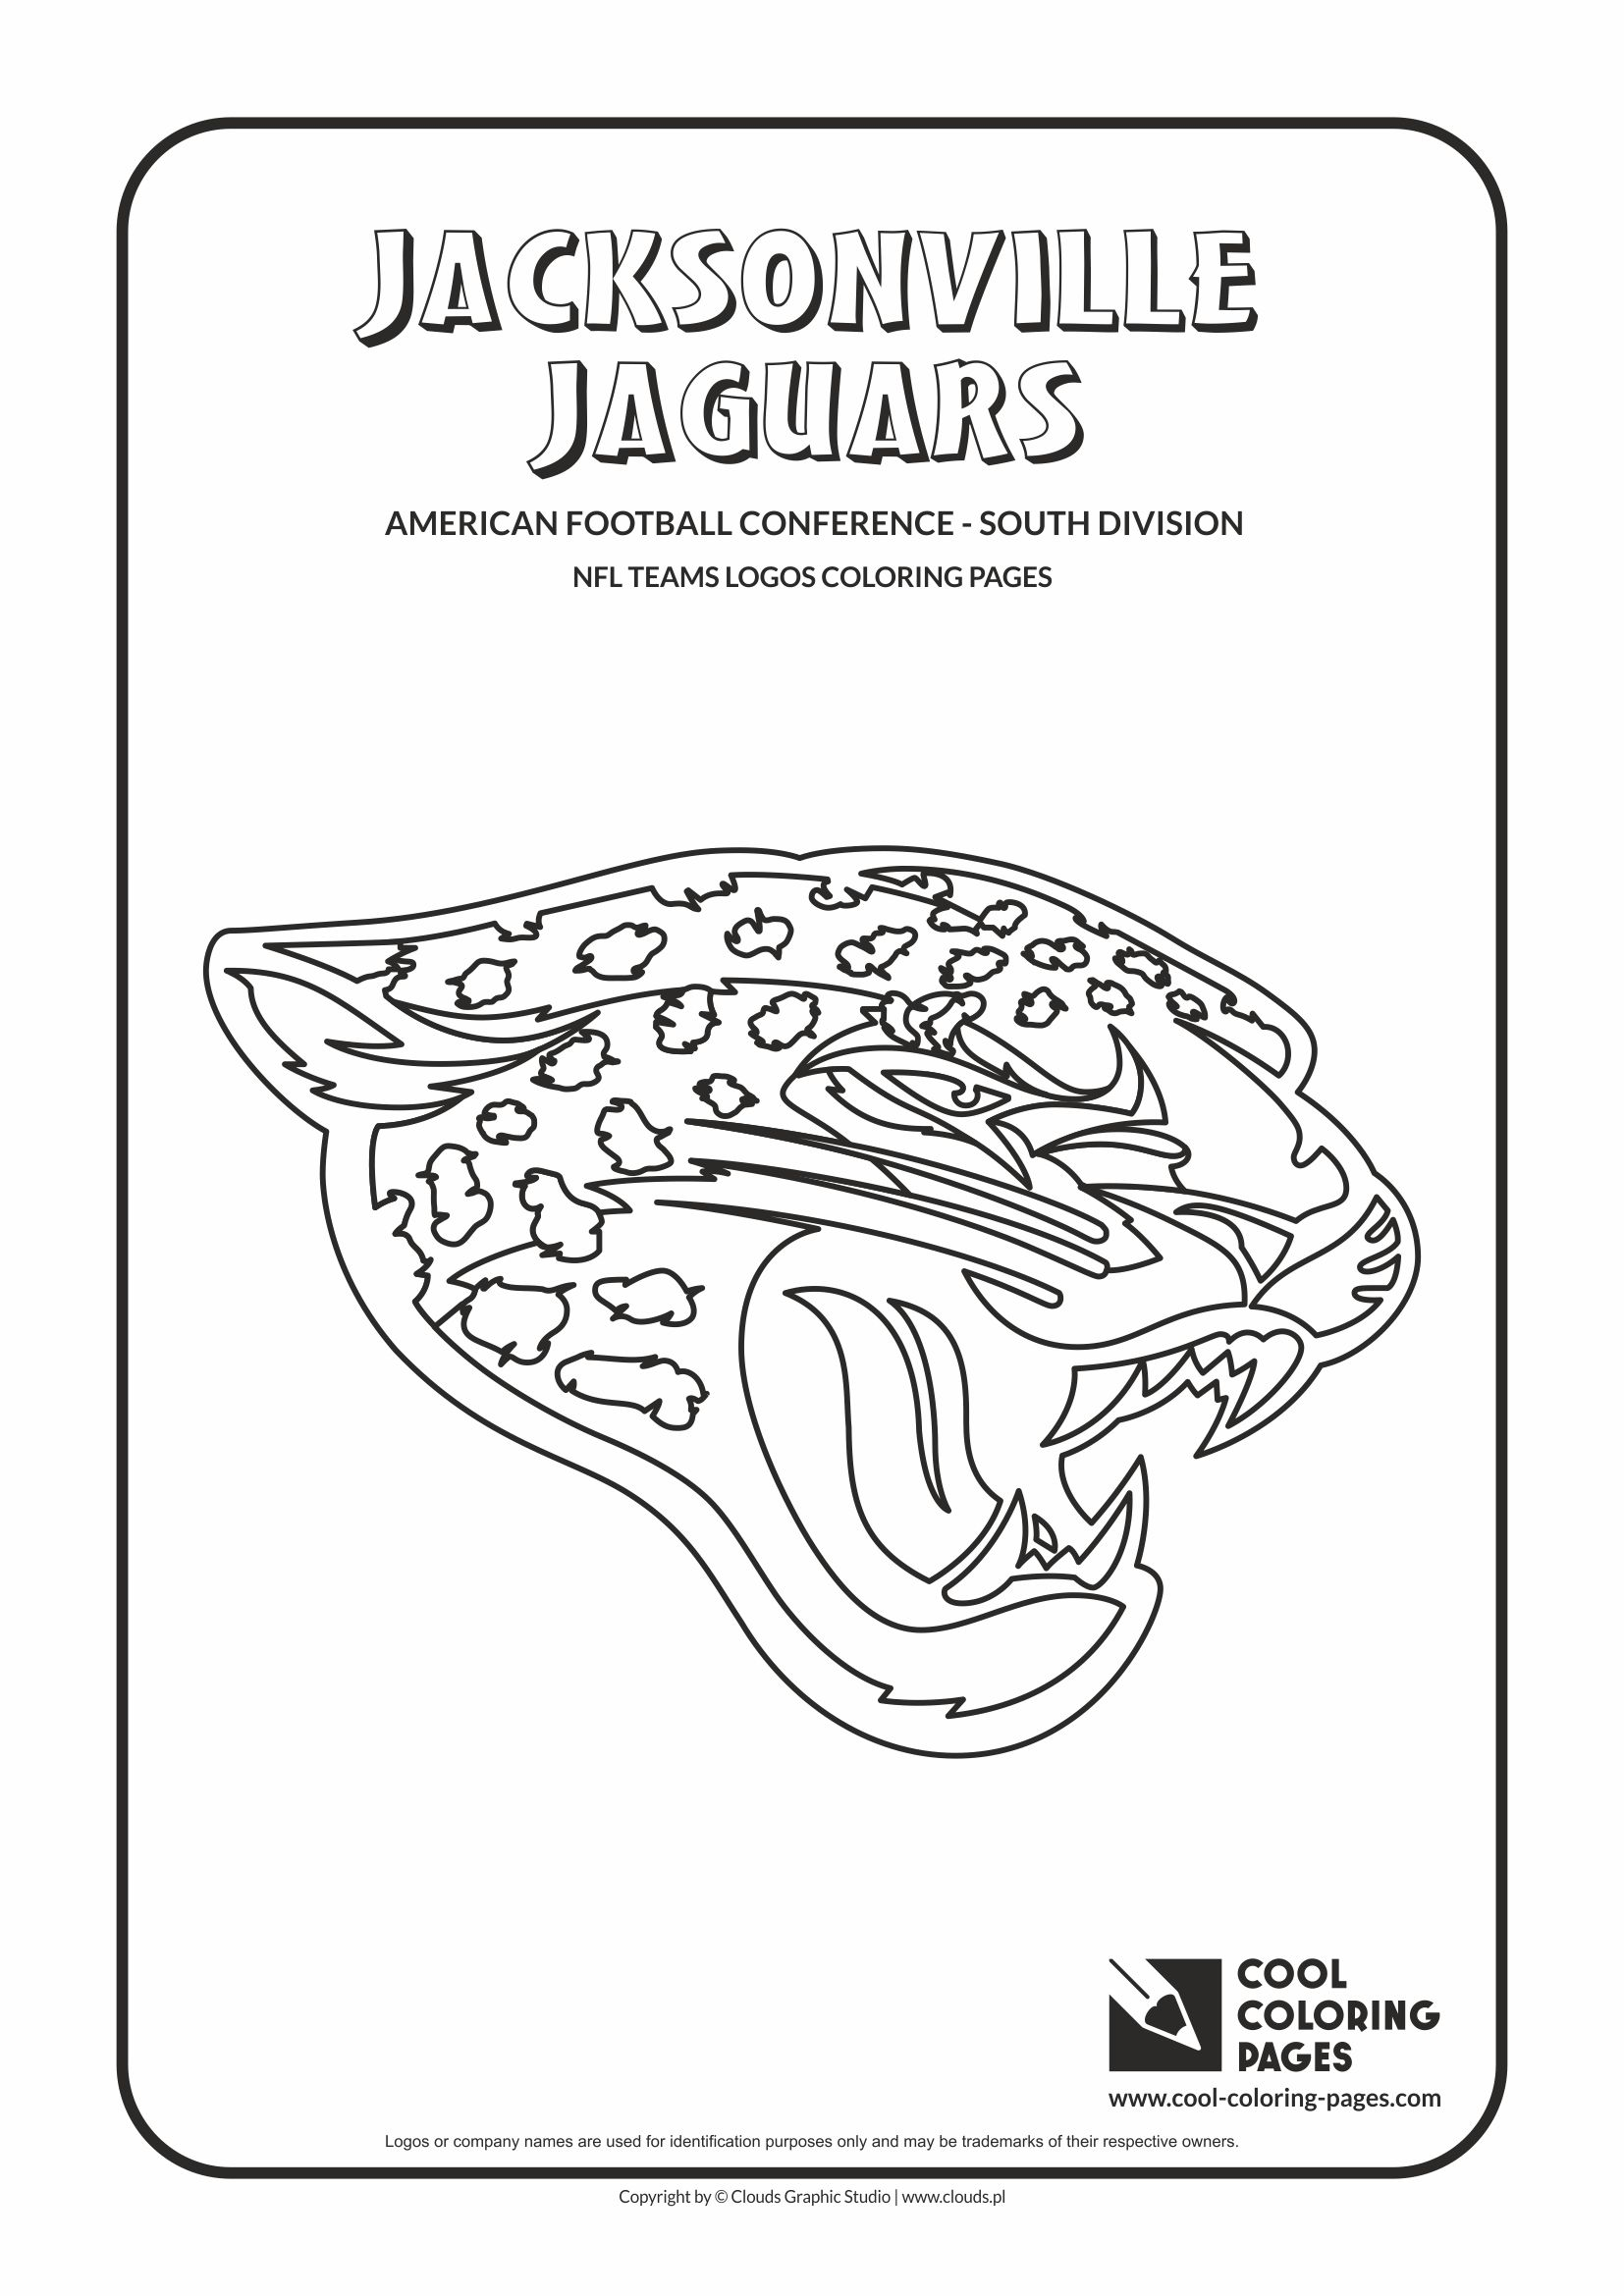 Cool Coloring Pages - NFL American Football Clubs Logos - American Football Conference - South Division / Jacksonville Jaguars logo / Coloring page with Jacksonville Jaguars logo